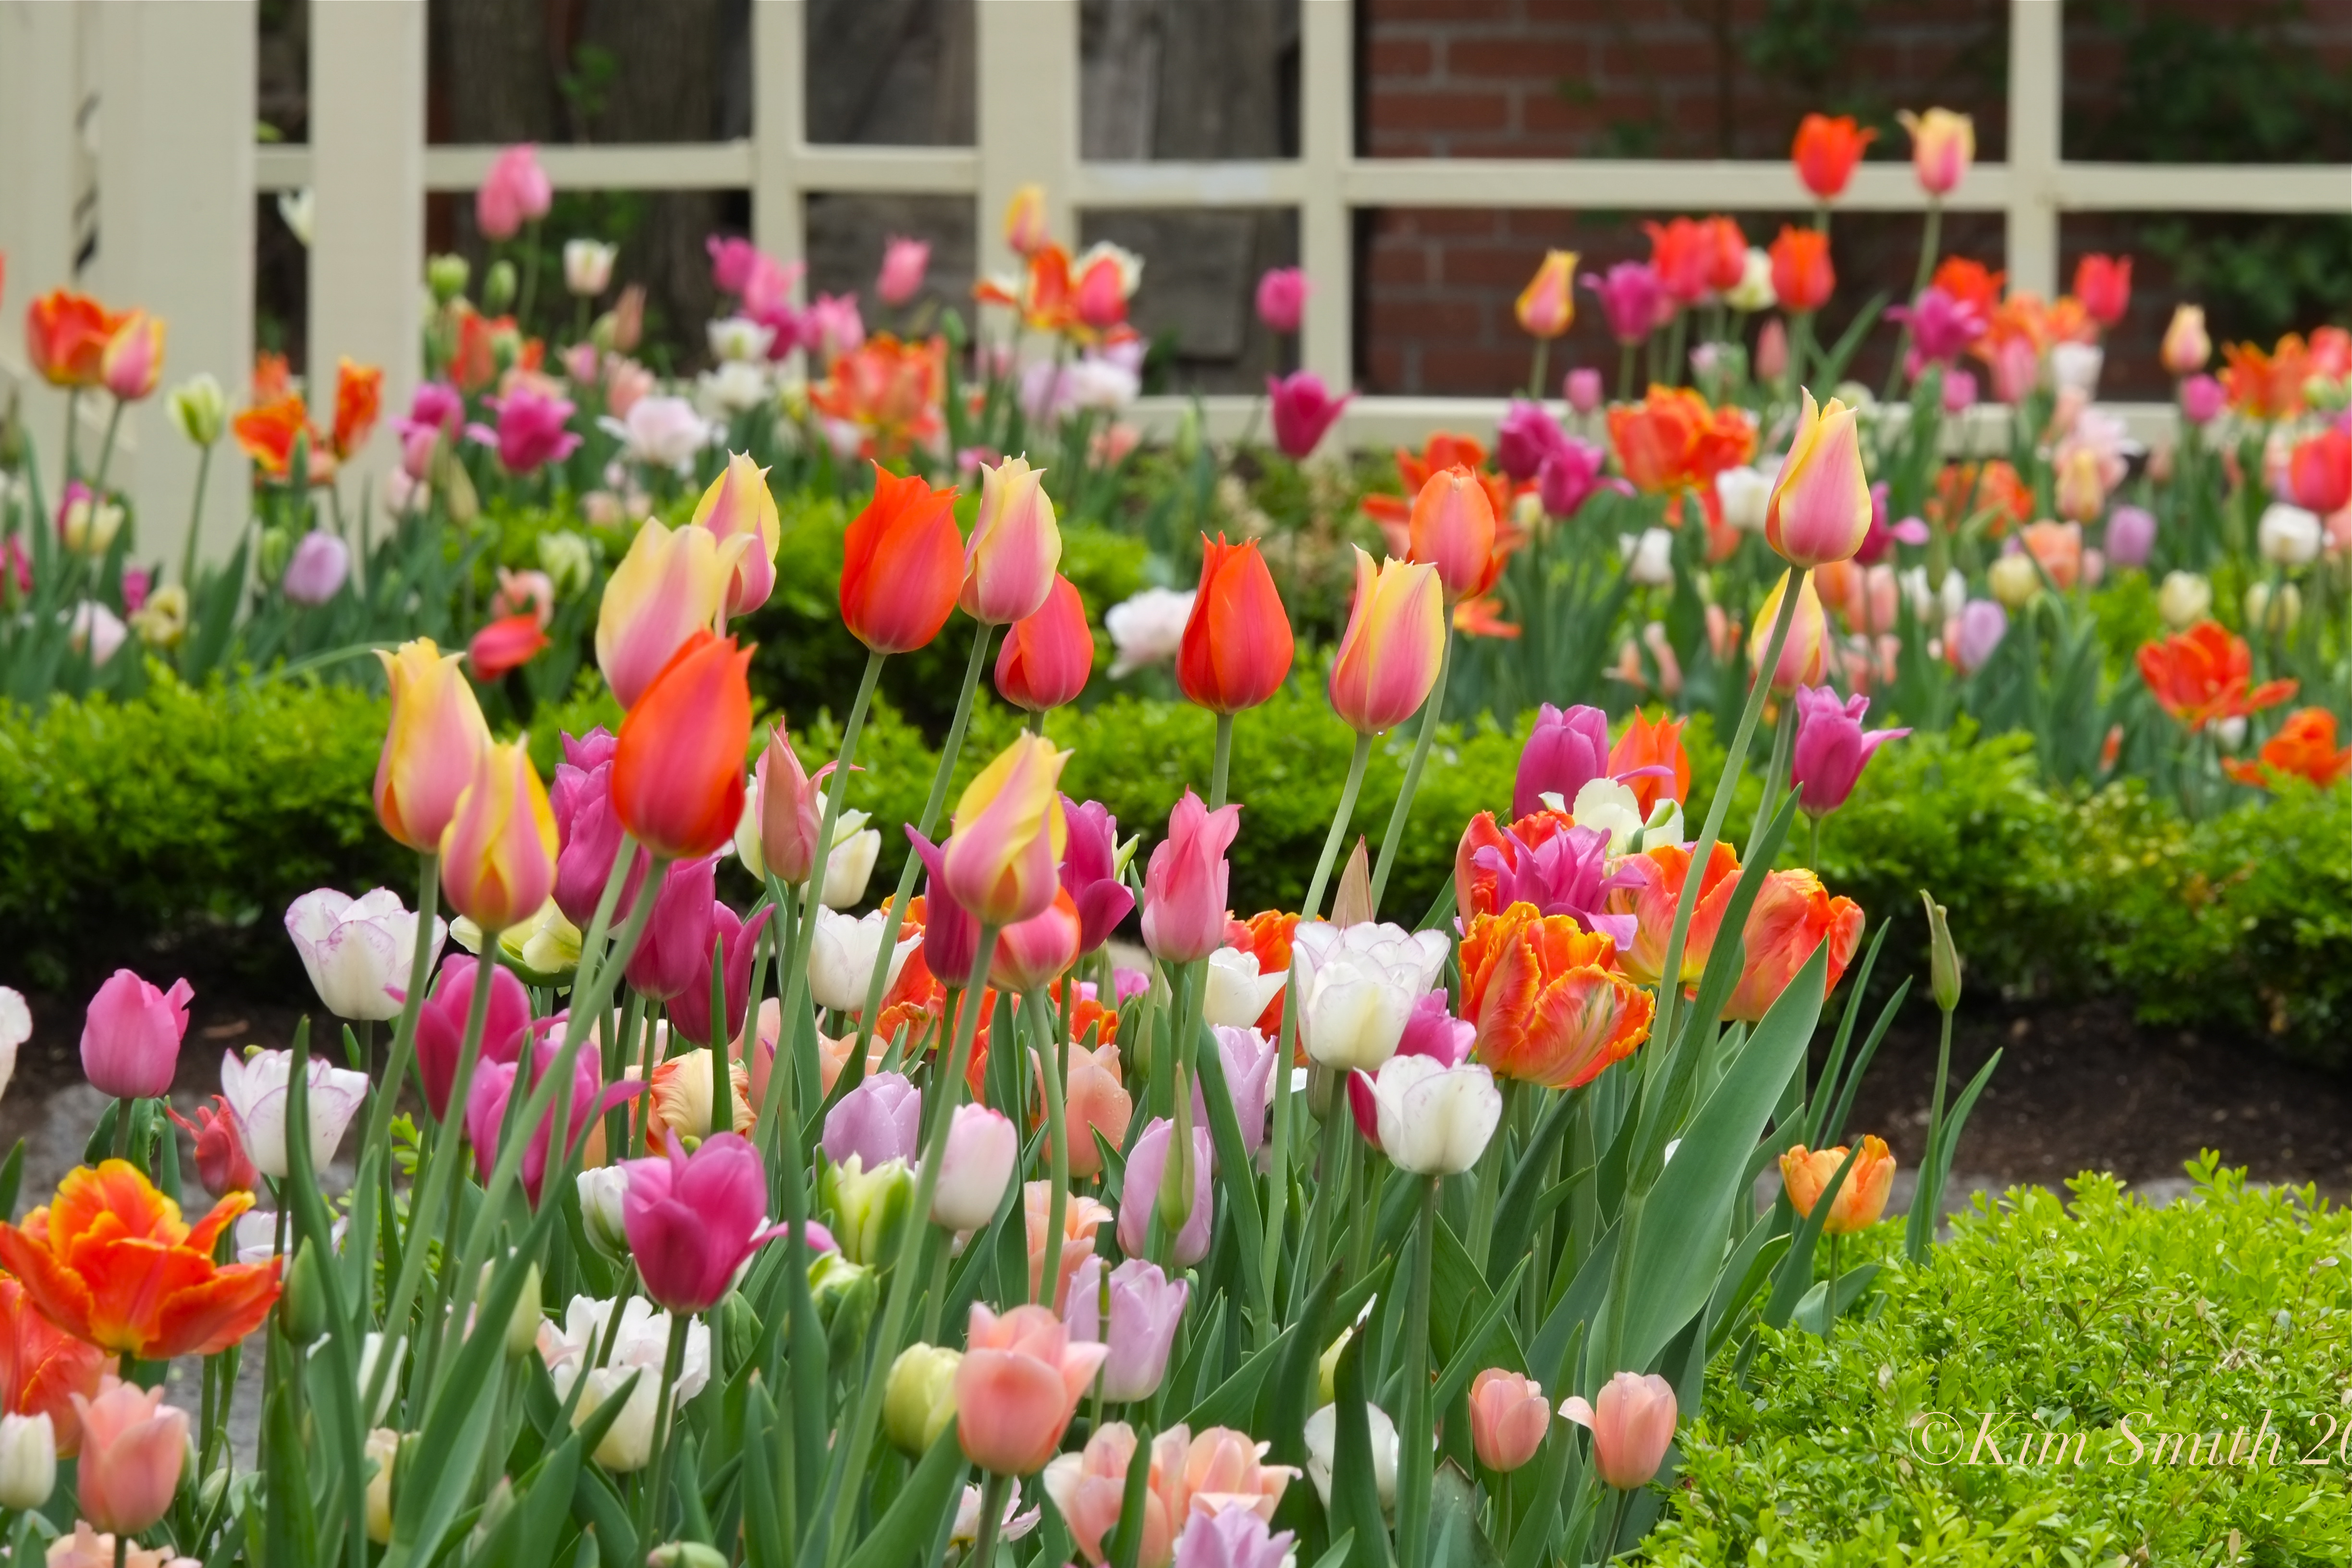 tulip-garden-mary-prentiss-inn-cambridge-6-c2a9kim-smith-2015.jpg